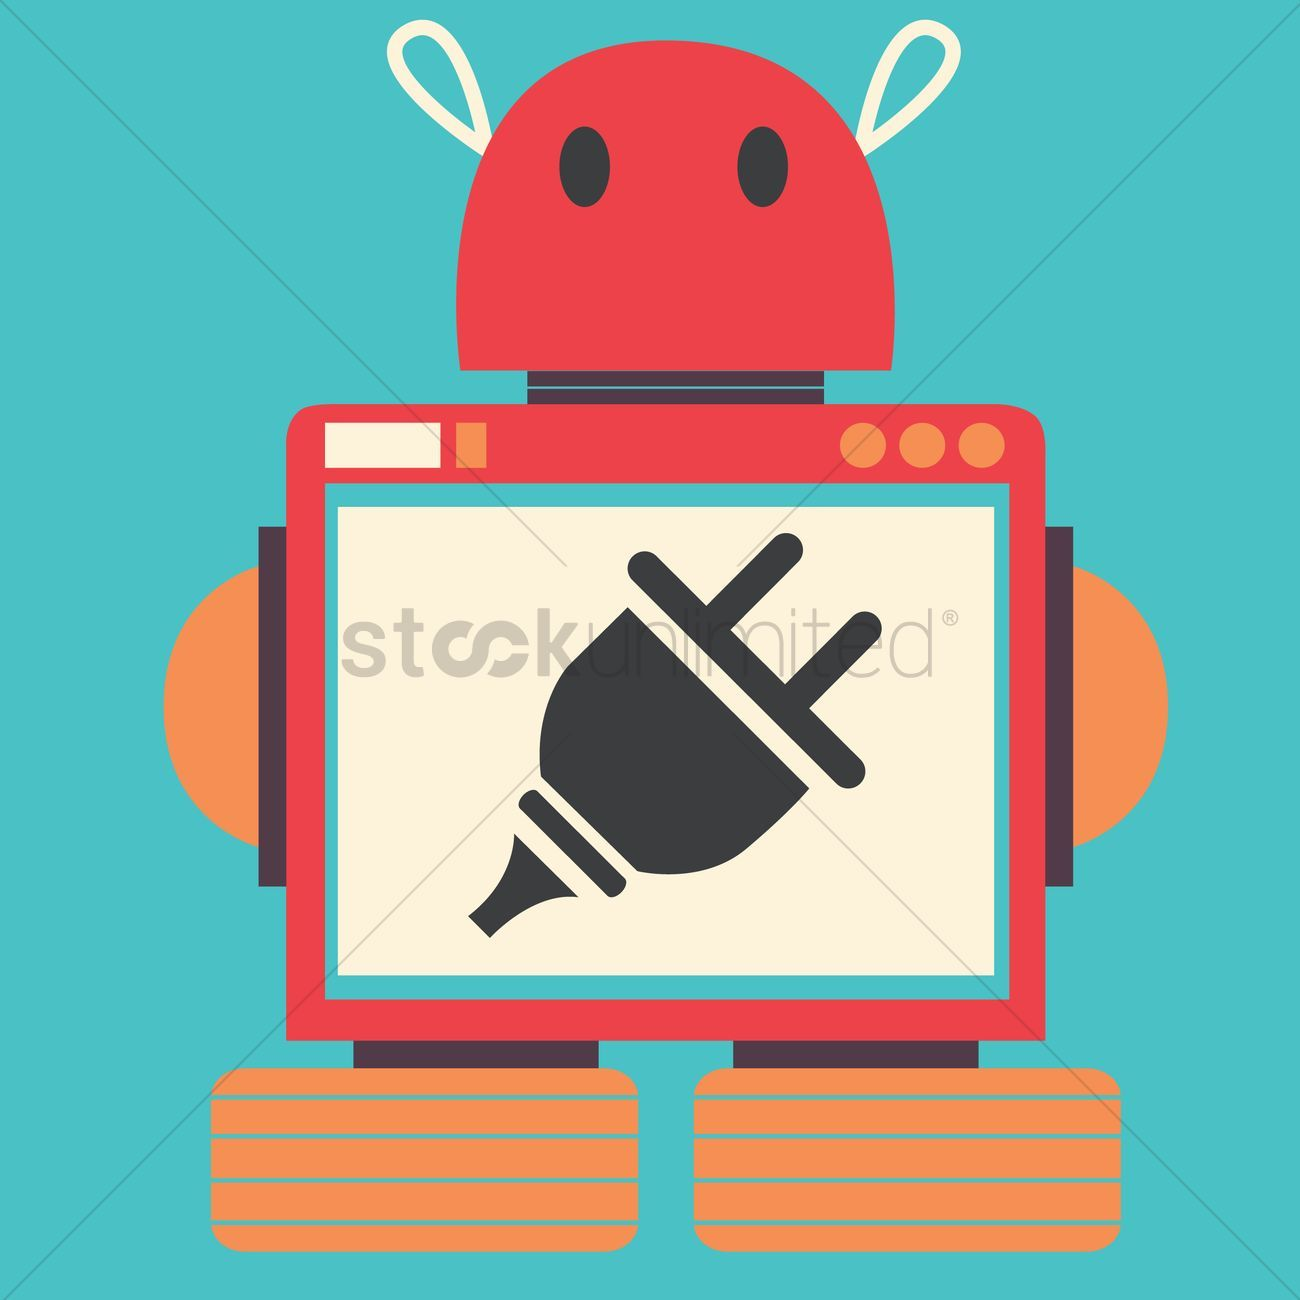 Robot with plug stock vector